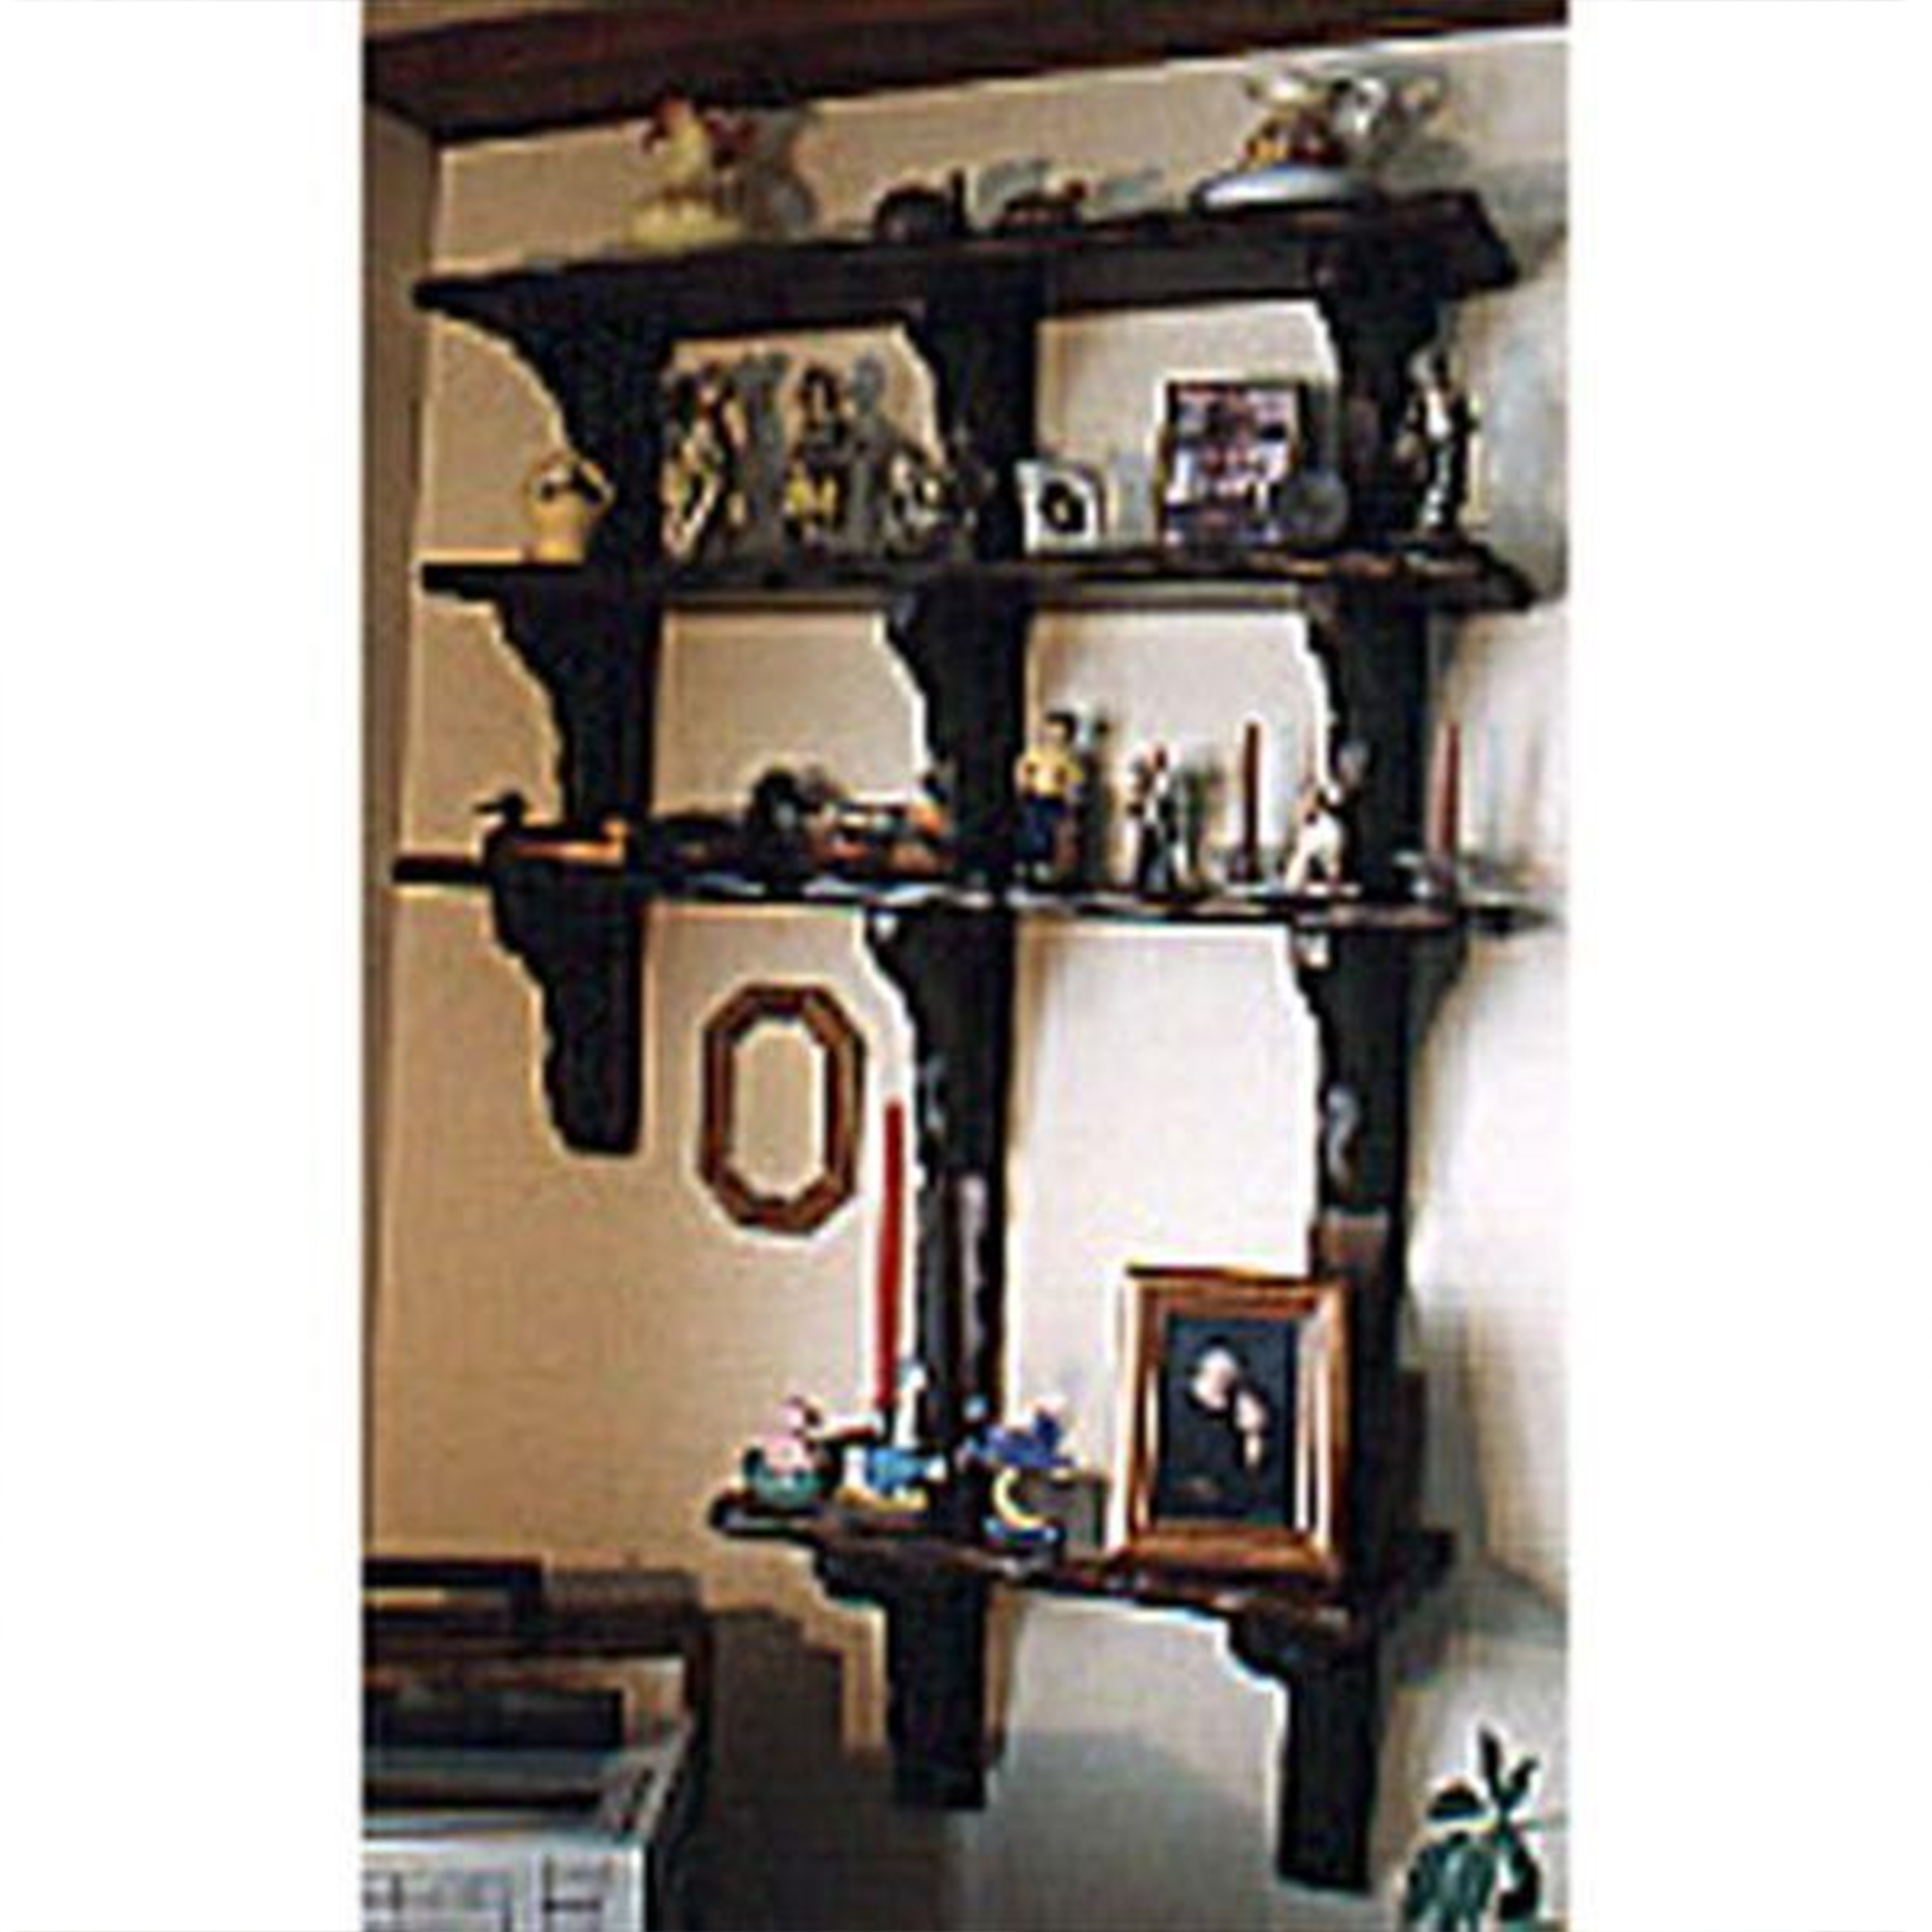 Woodworking Project Paper Plan to Build Decorative Shelving